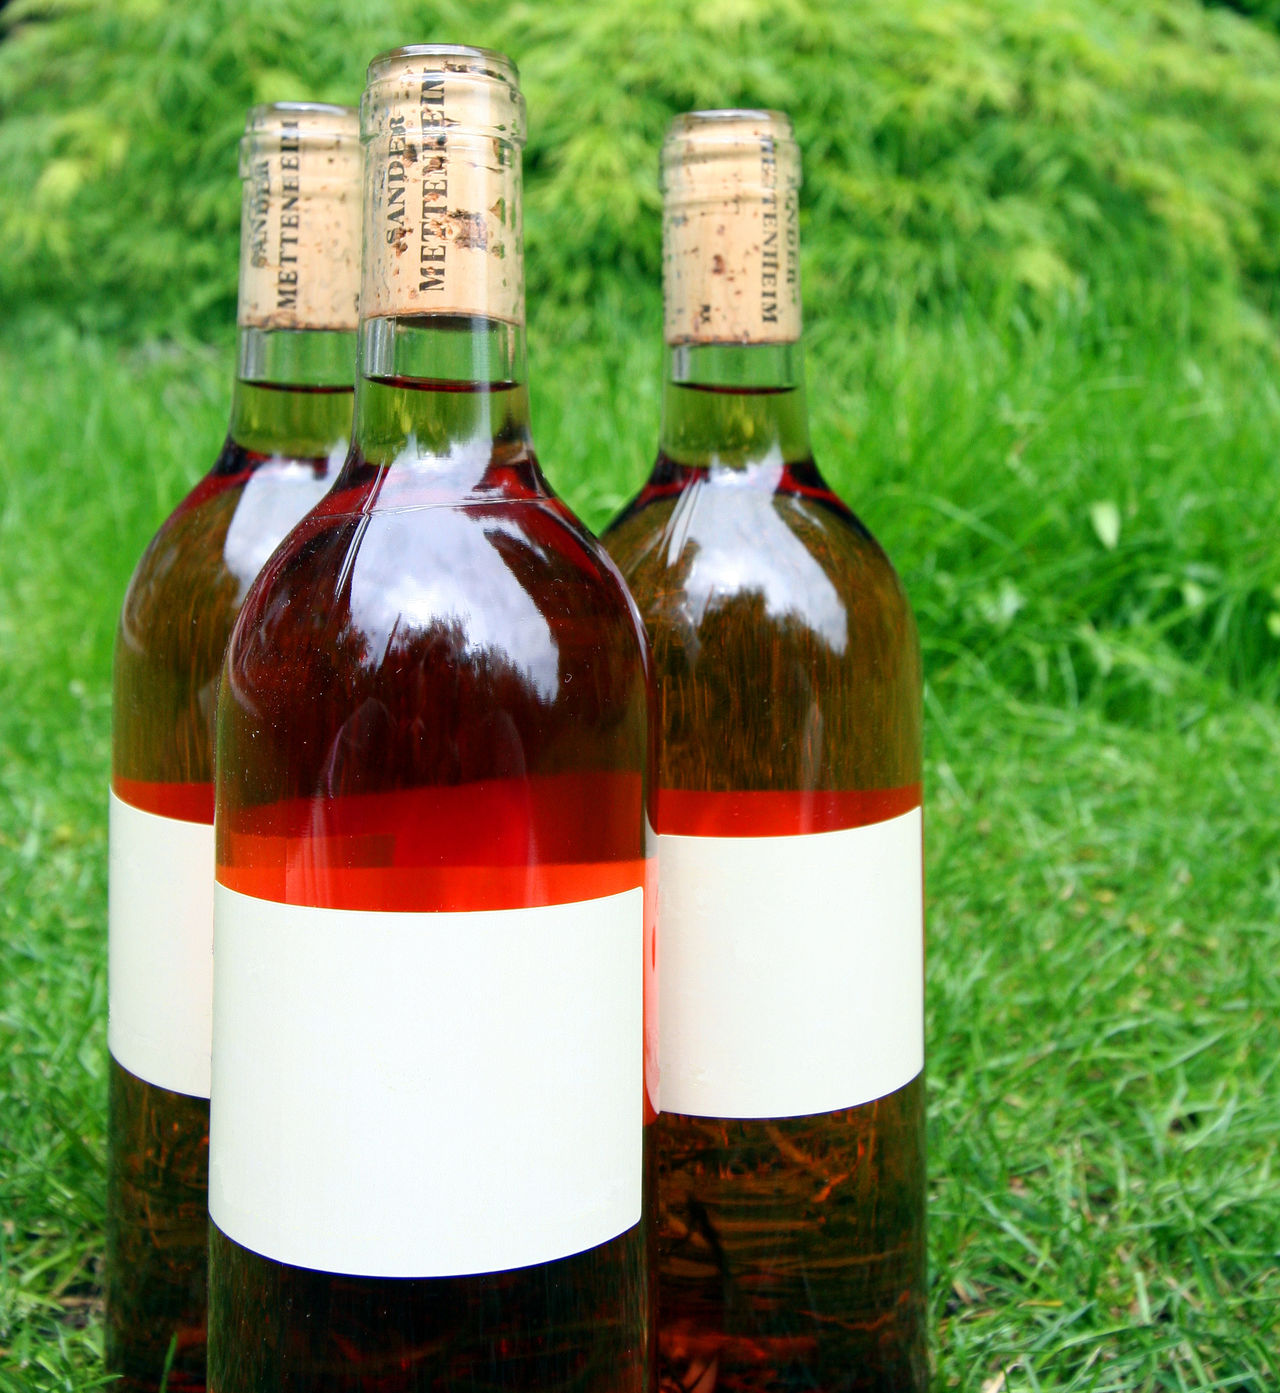 Wine Bottles - Trio Alcohol Beverage Blank Label Bottle Close-up Drink Food And Drink Garden Party Grass Invitation Label No People Outdoor Party Outdoors Party Picnic Rosé Three Objects Trio Wine Wine Bottle Wine Bottle Wine Bottles Wine Moments Winetasting